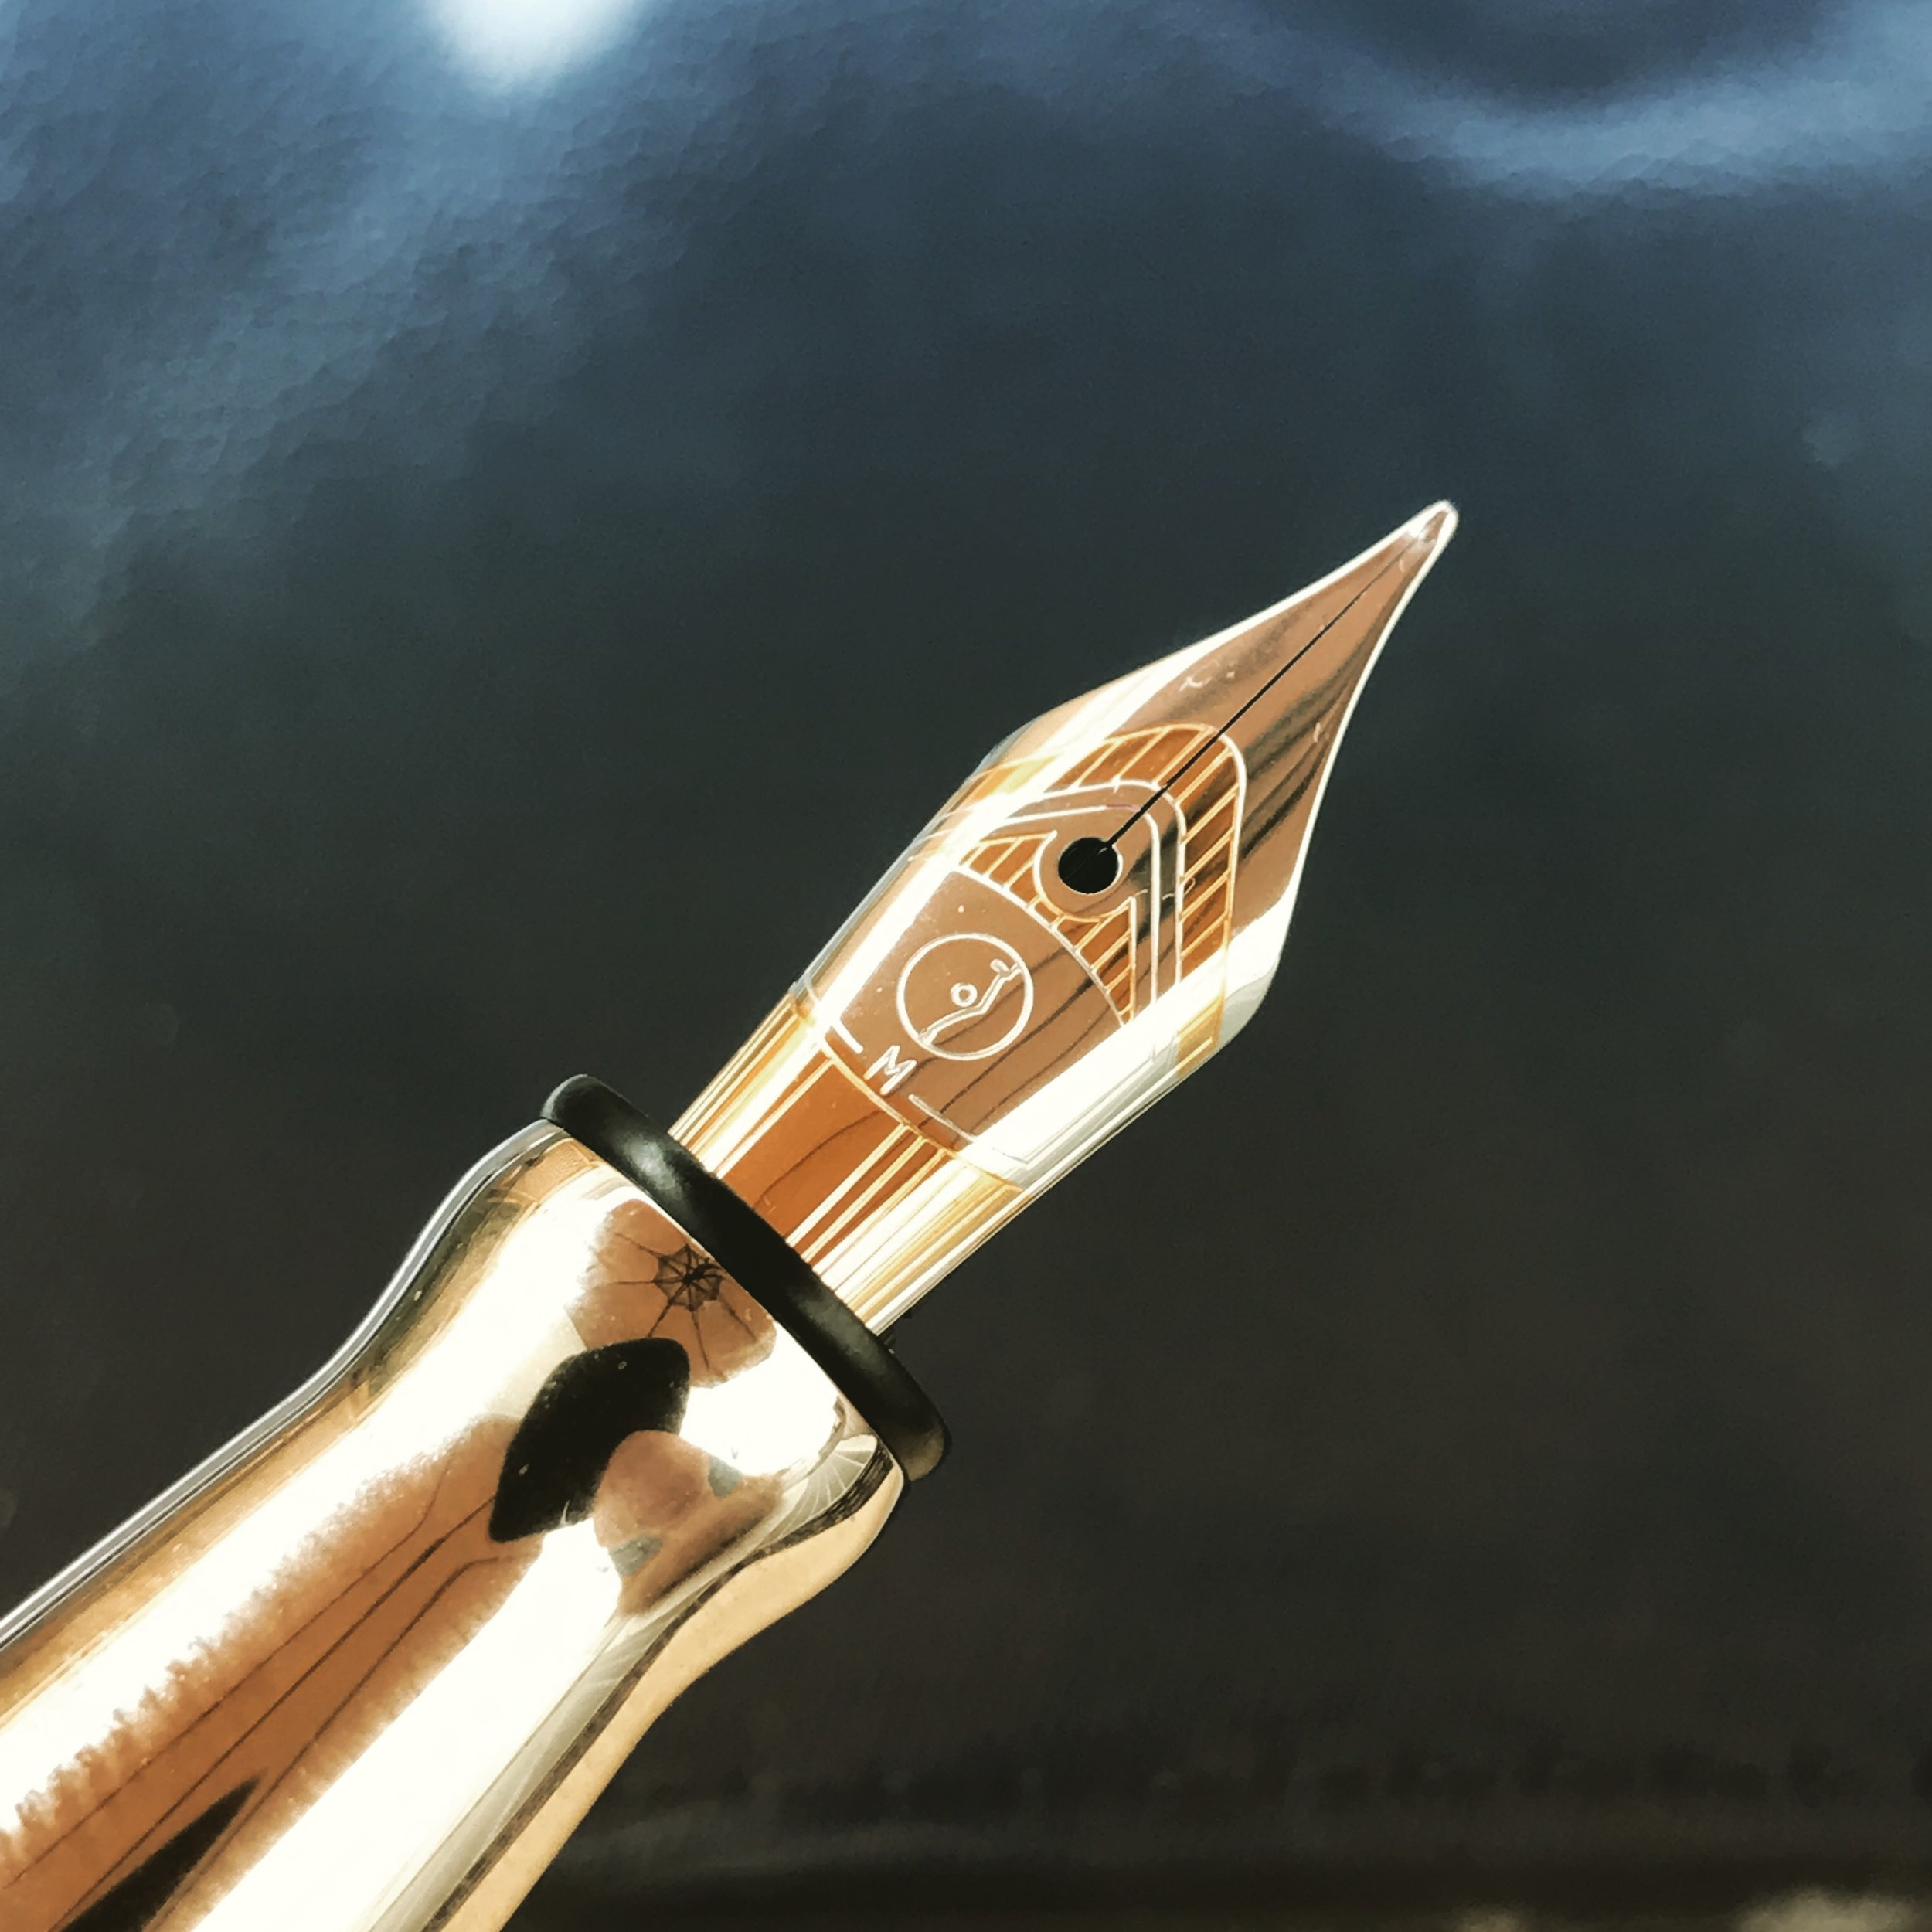 I found the detailing on this nib really attractive. I like the understated Otto Hutt logo.